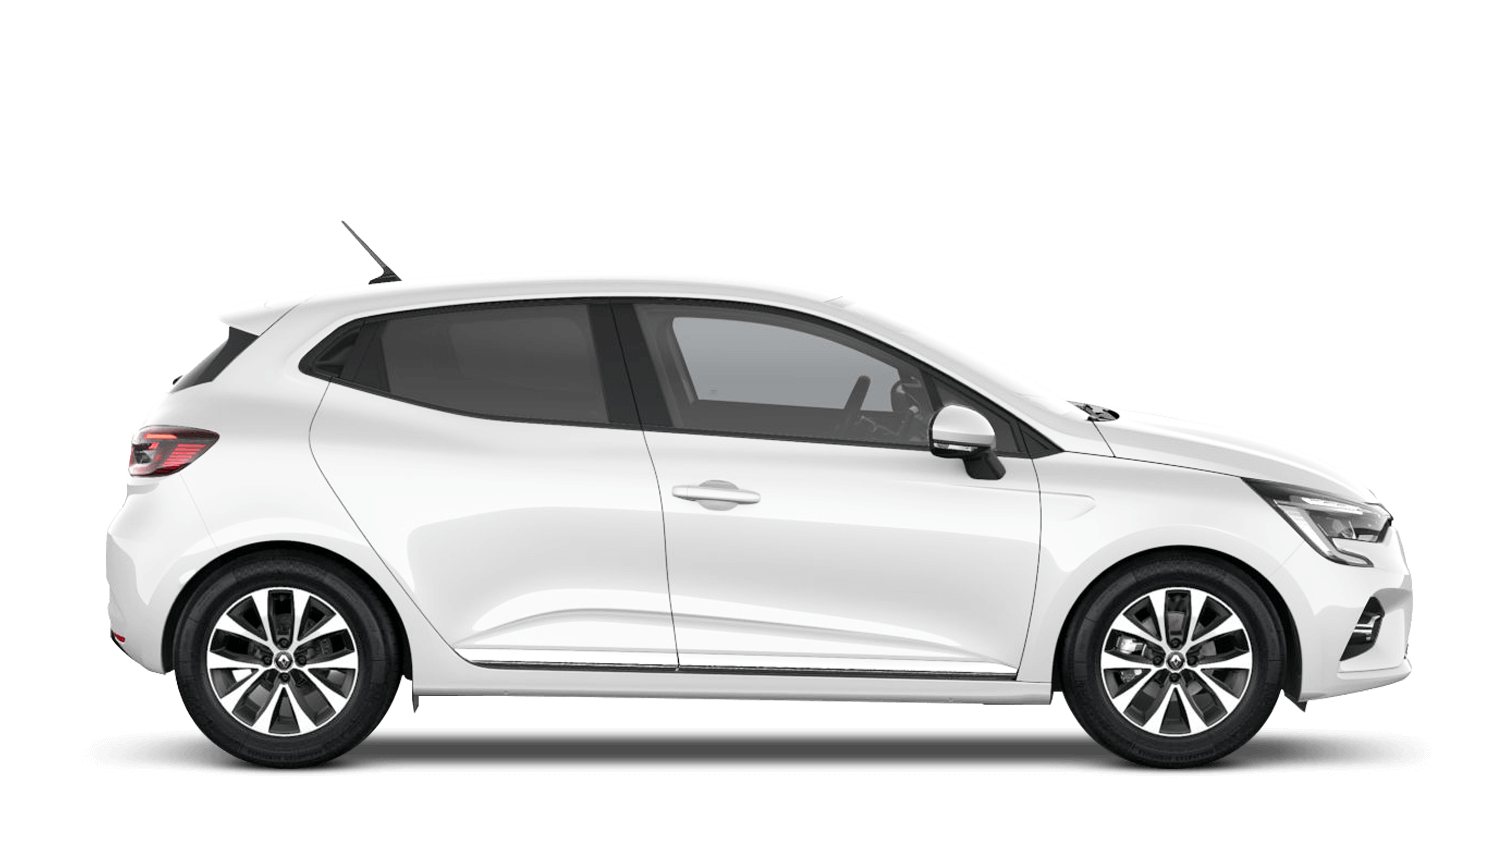 New Renault Clio Iconic 90 1.0 Tce